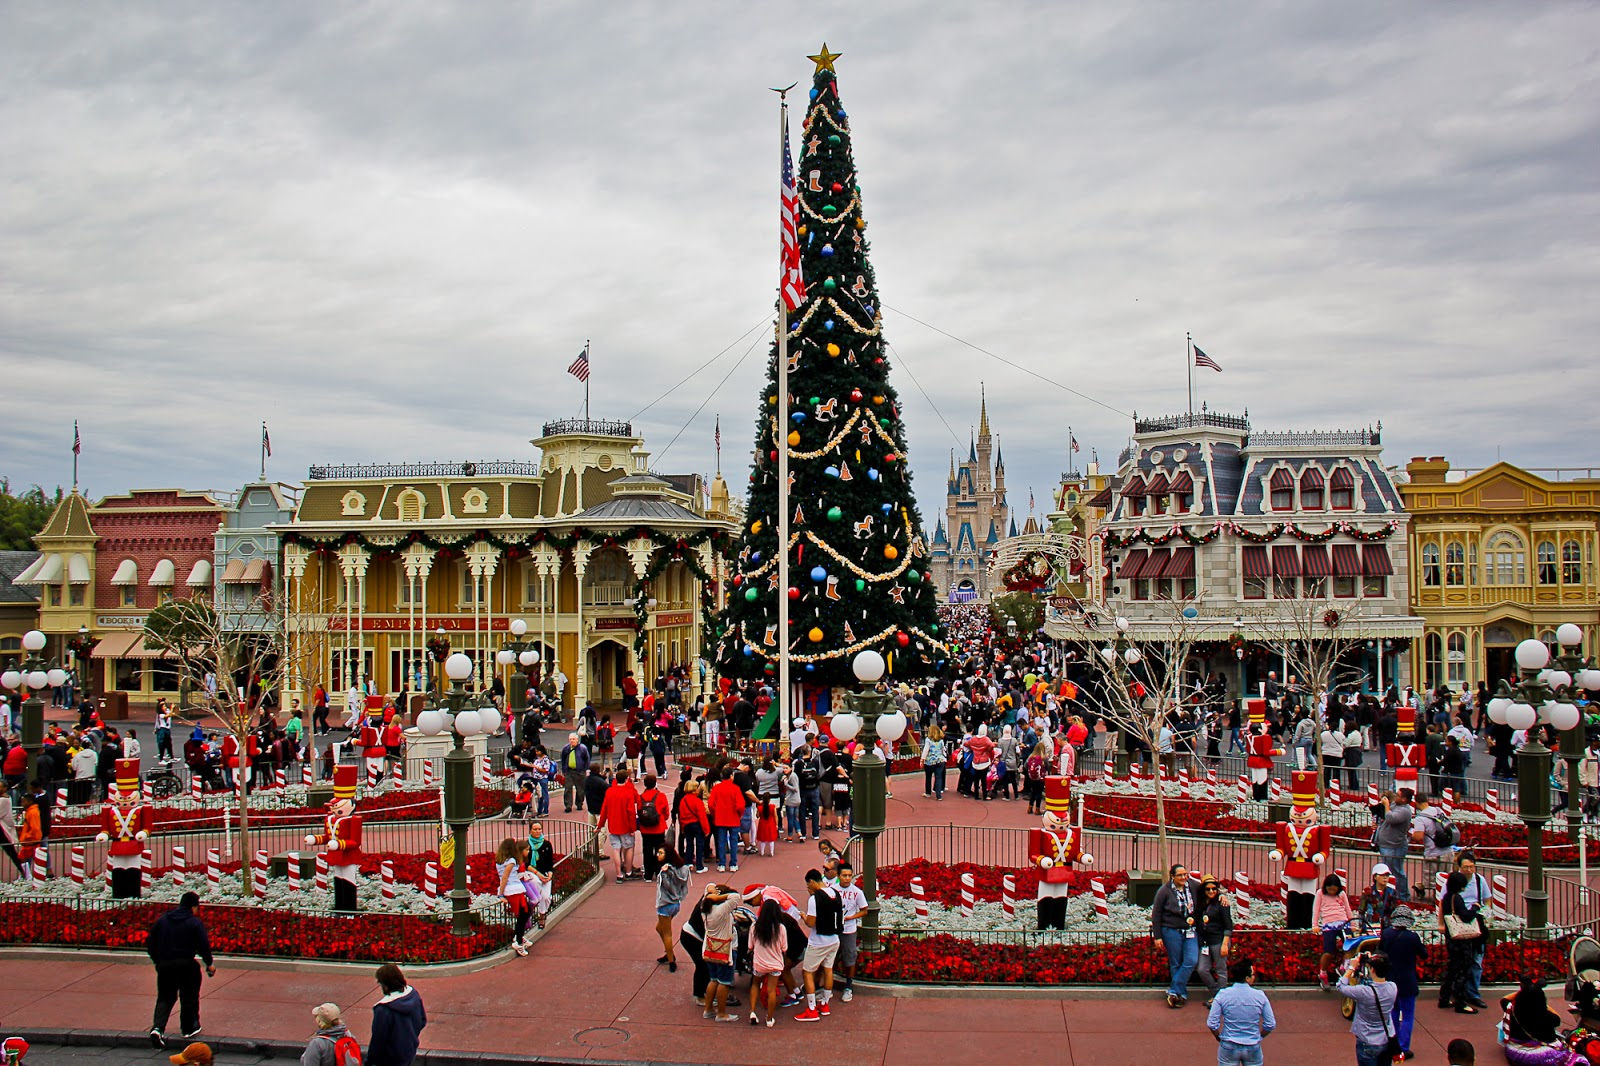 and i am glad that we decided to do this because disney at christmastime truly iswell magical - Disney Christmas 2015